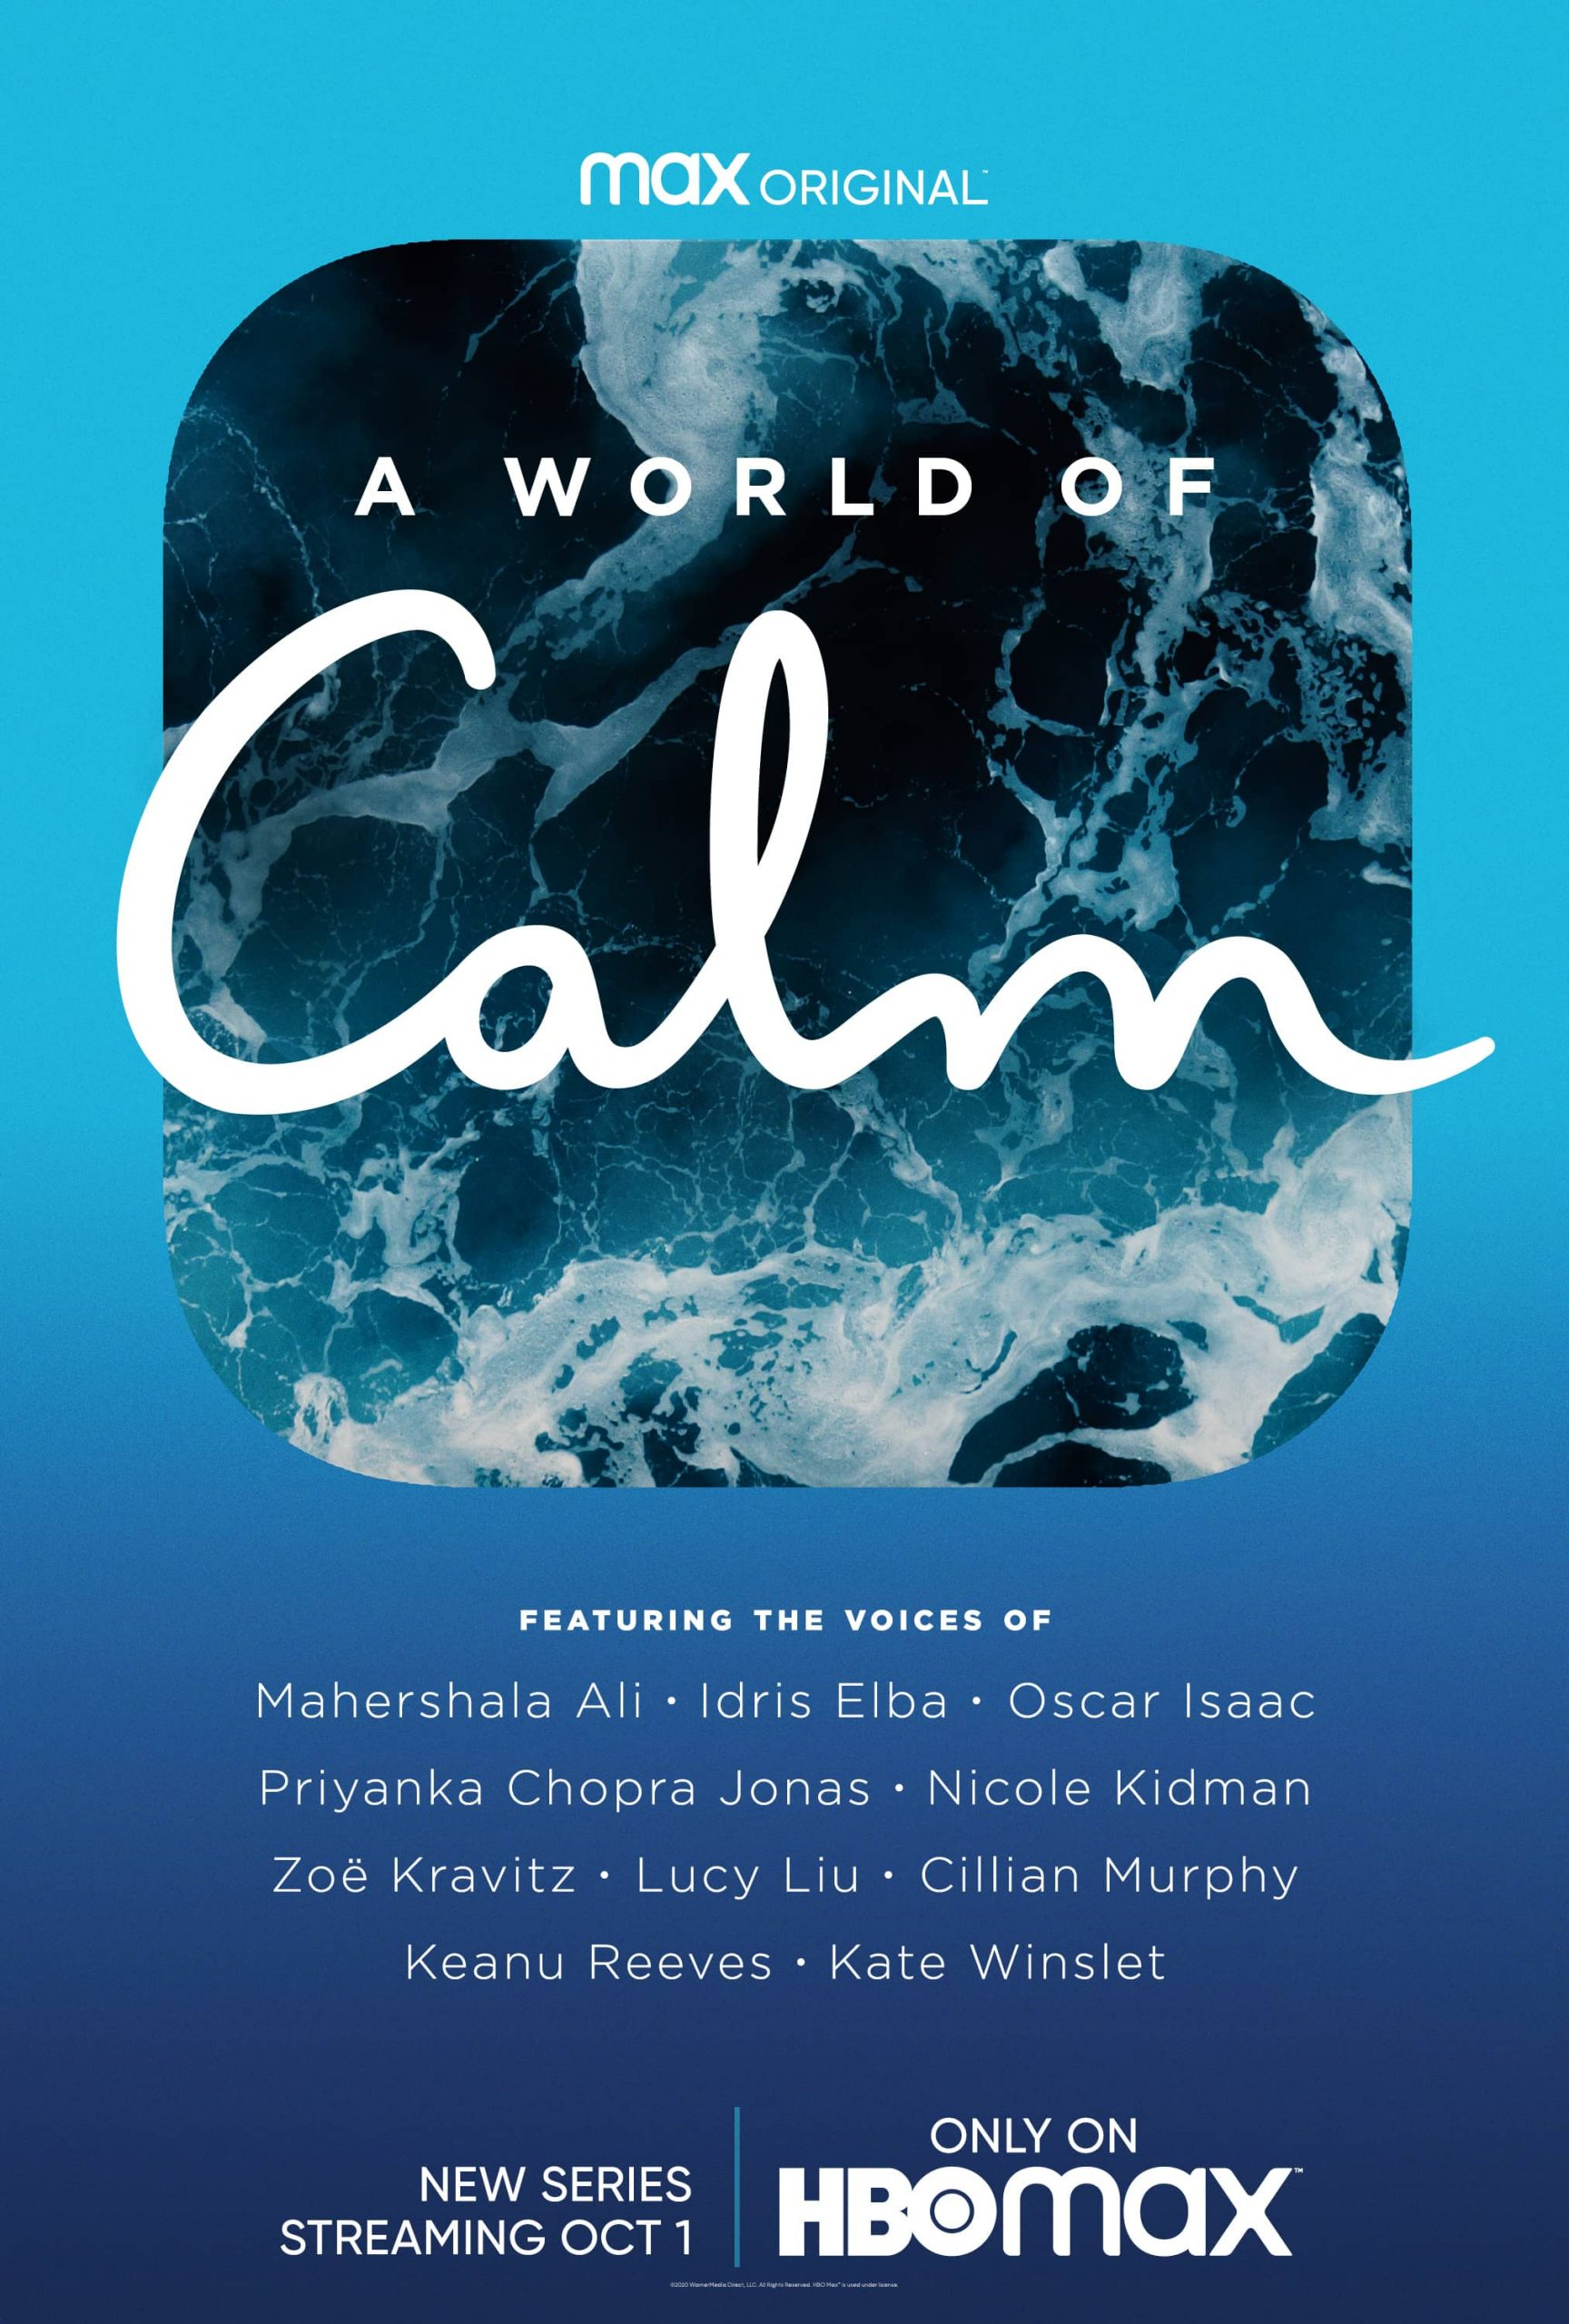 A WORLD OF CALM HBO Max Poster Key Art scaled